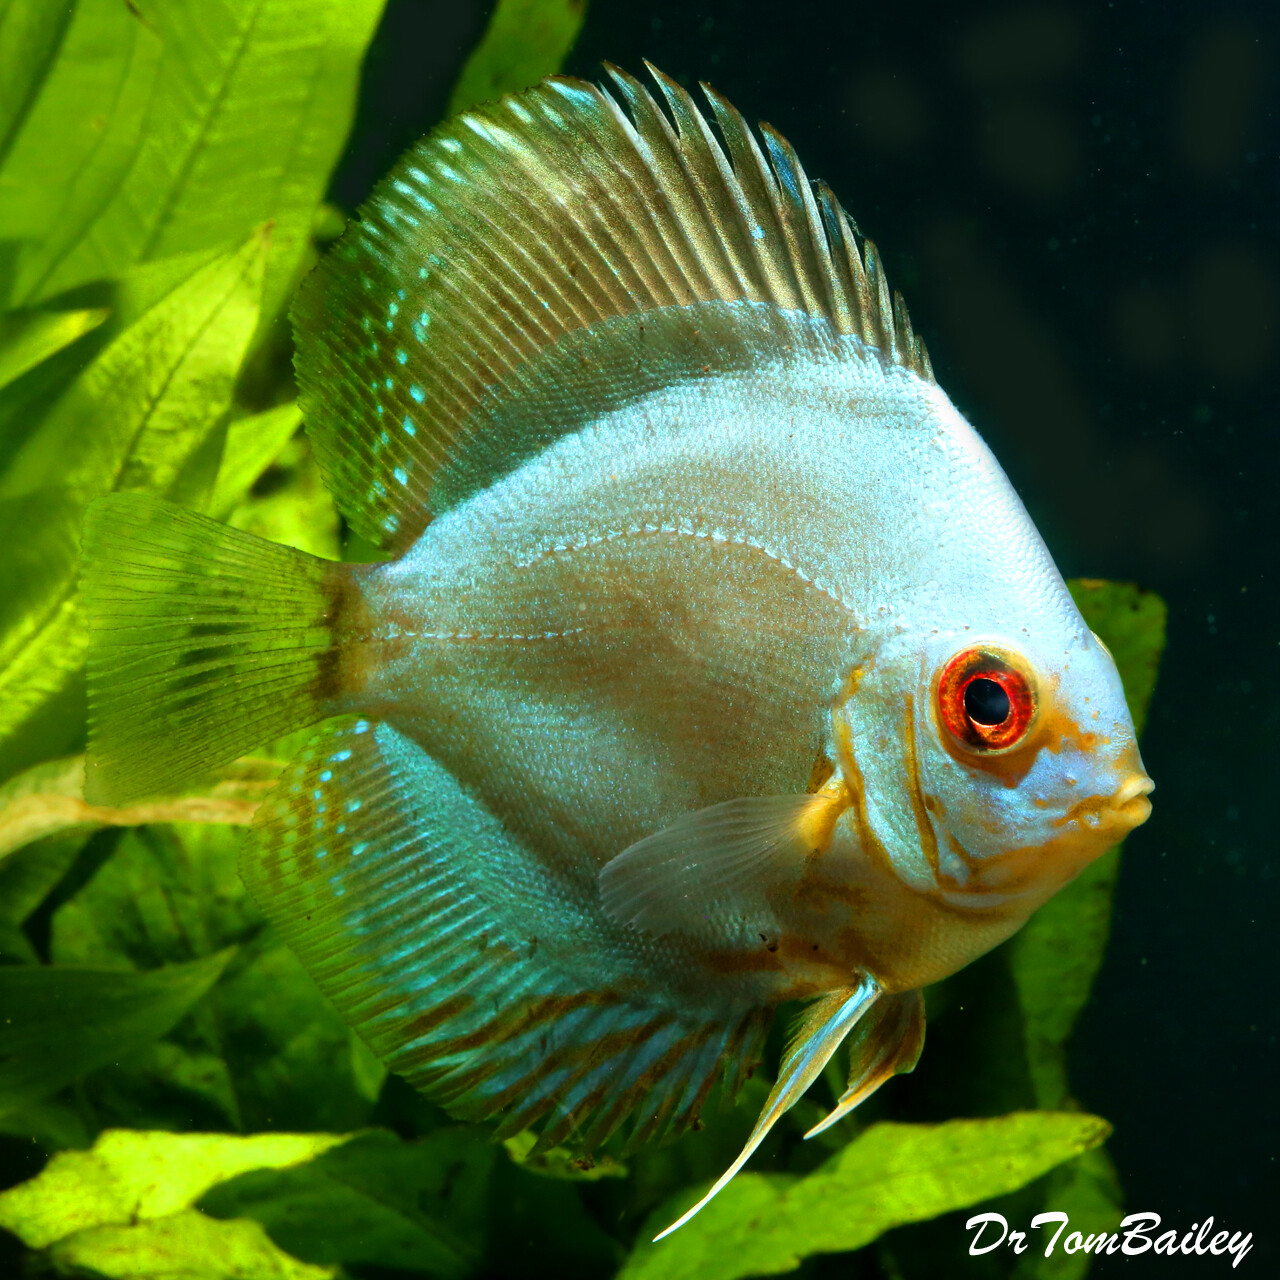 "Premium WYSIWYG Blue Diamond Discus, 3"" to 3.5"" long, in our tank X-63."